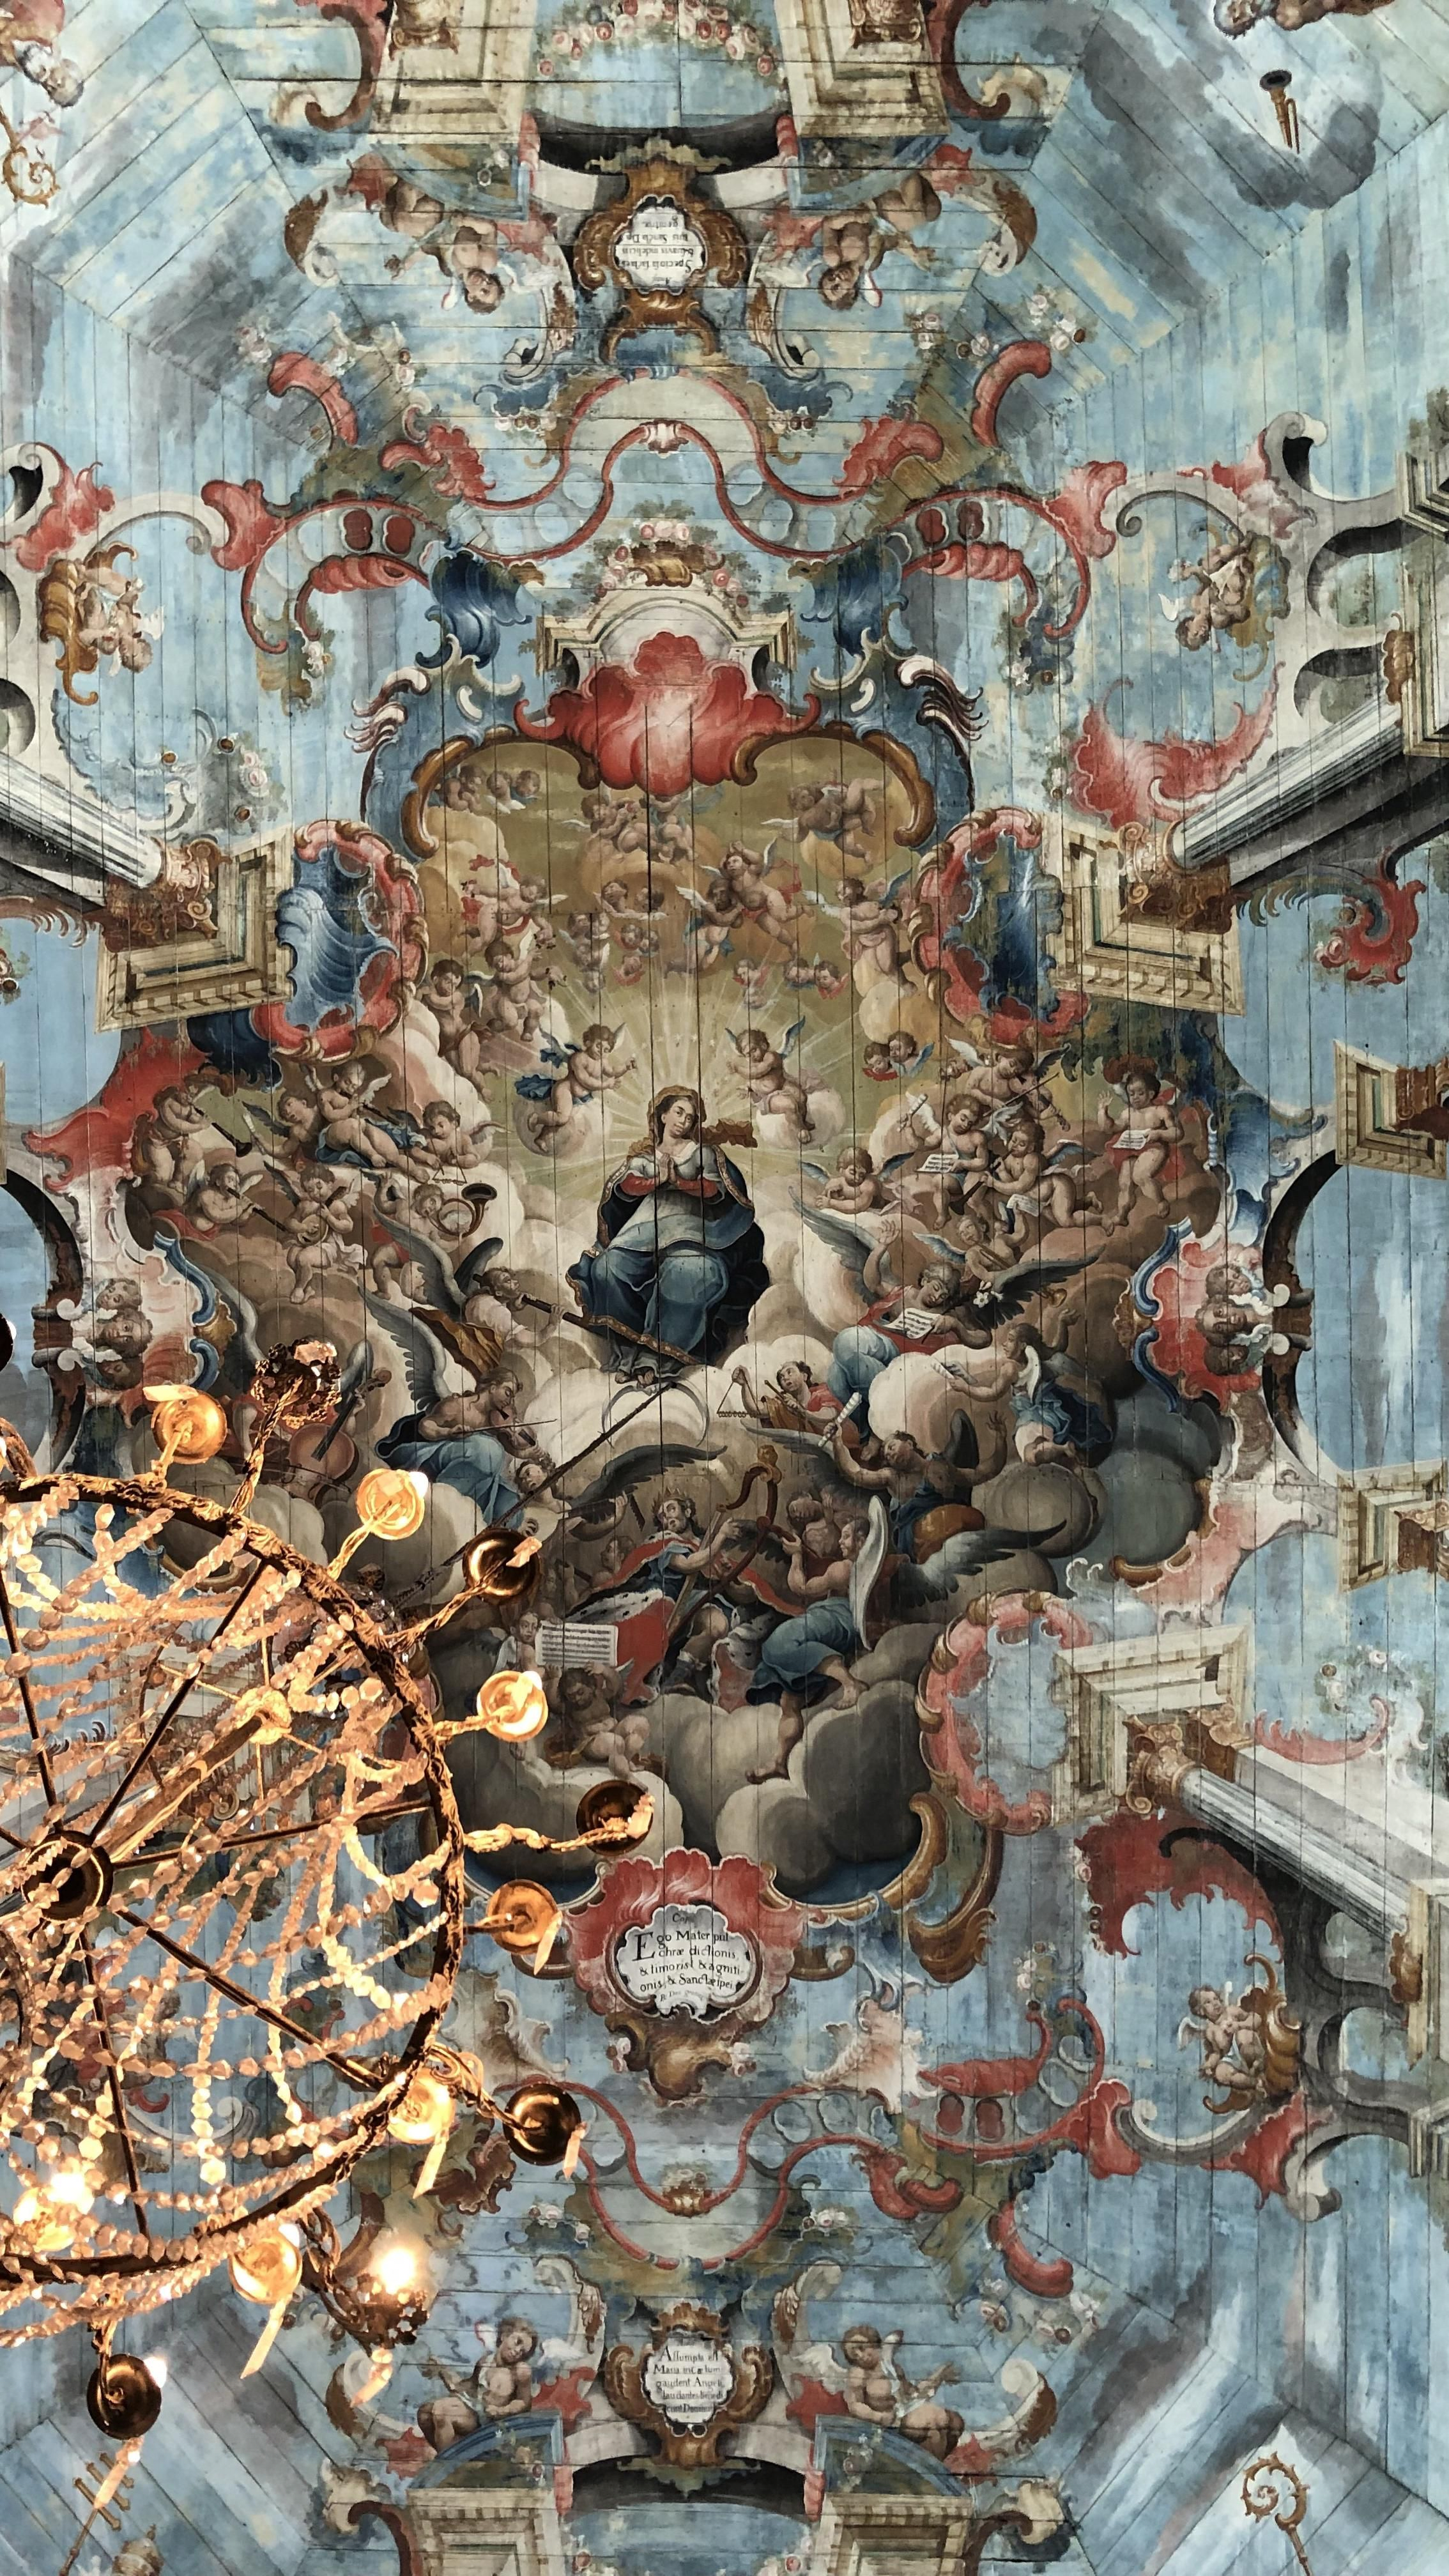 Ceiling Of The Church Of San Francisco De Assis In Ouro Preto